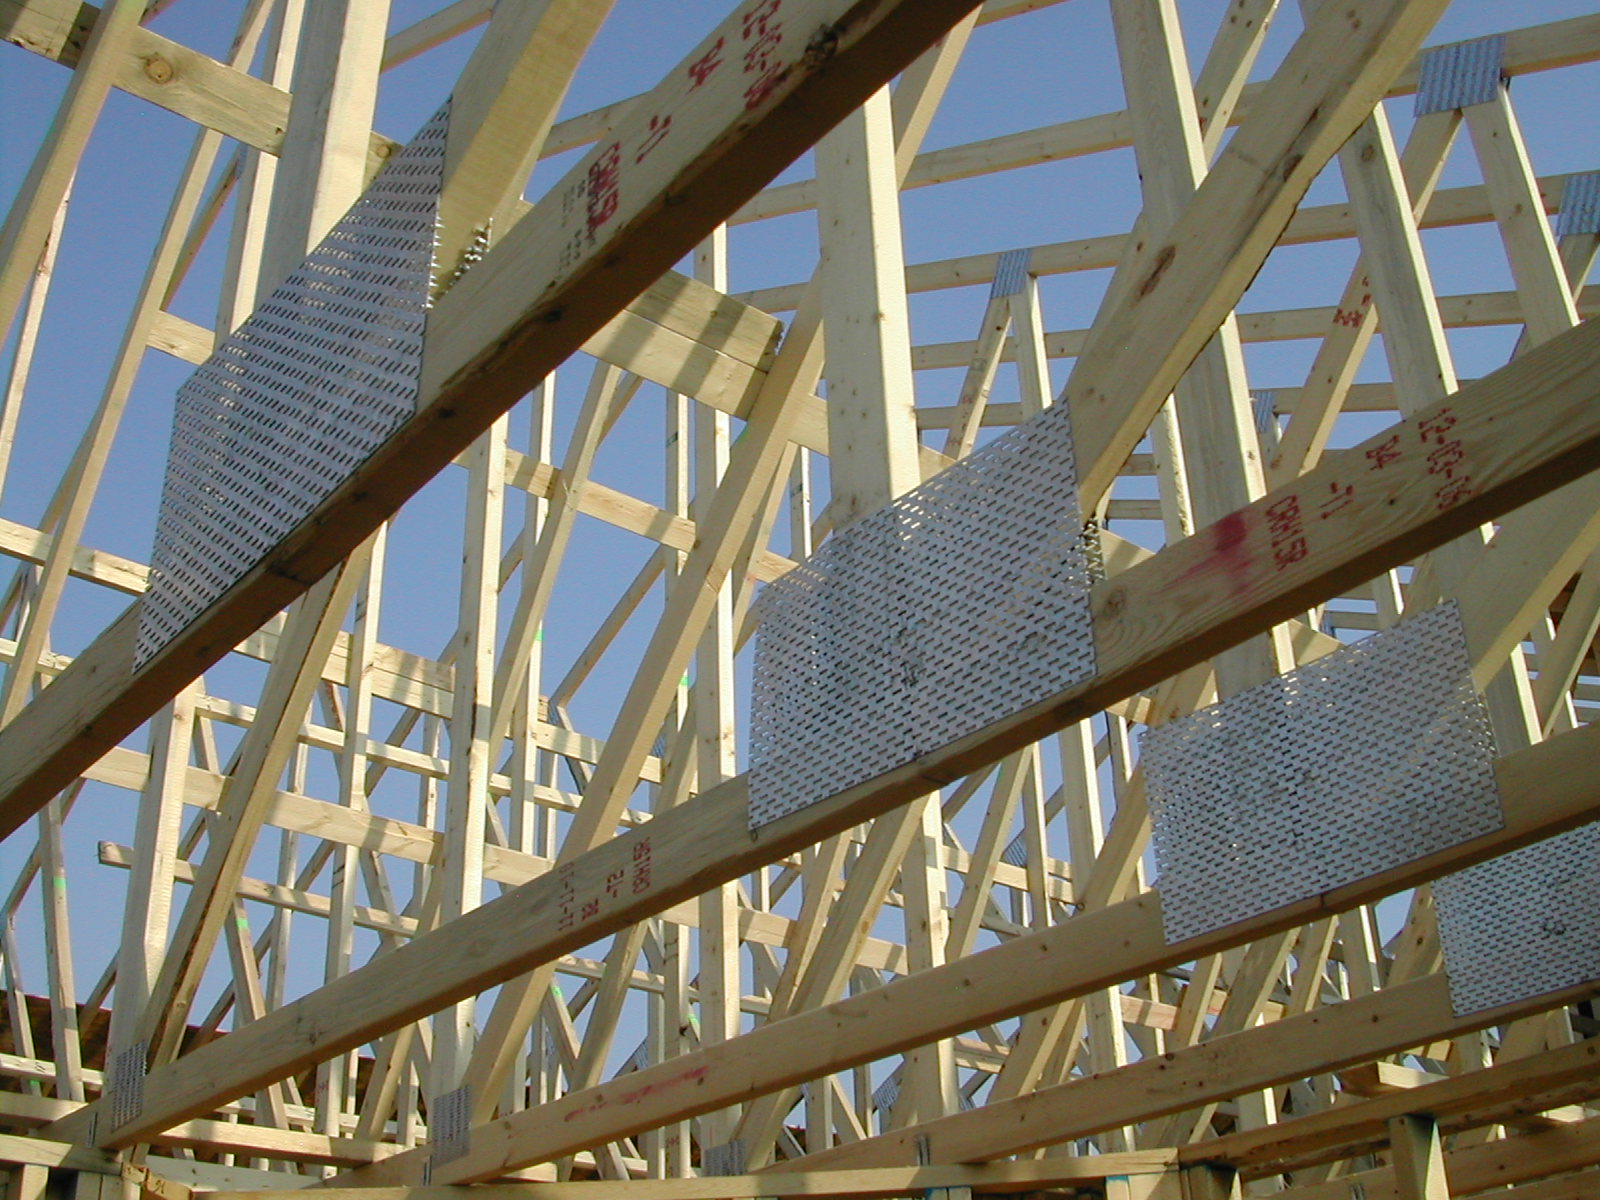 Roof Truss Failure Making Sure Your New Home Is Built